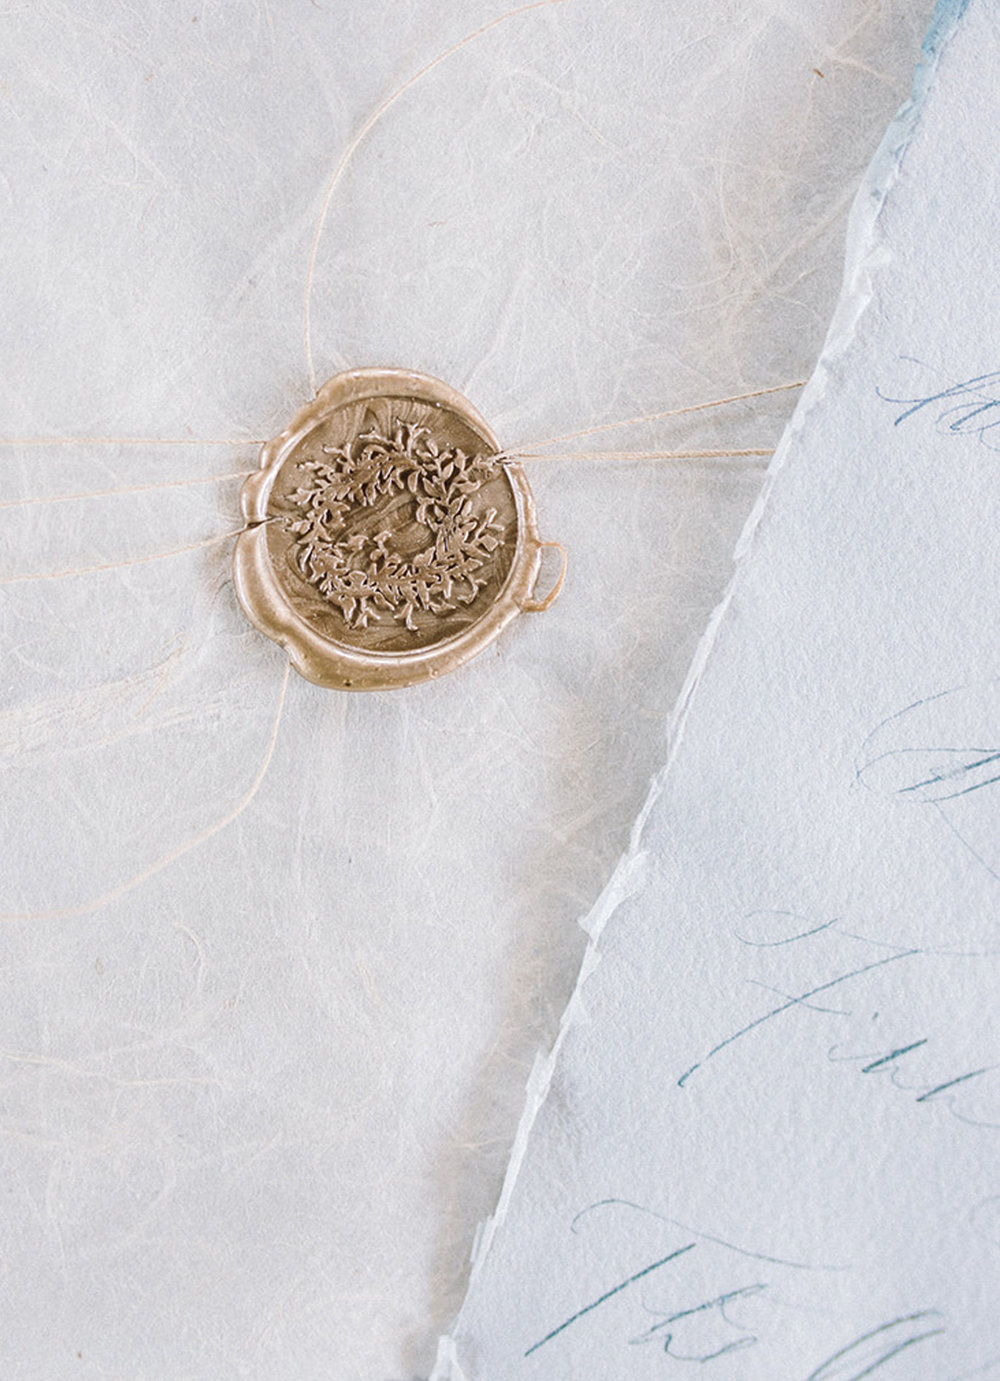 I can't get enough of this organic wax seal design! The effortless greenery is the perfect mixture of wreath and wild.  Read more about this wax seal design and my other 4 favorites on the blog! #waxseals #waxseal #waxsealdesign #fineartwedding #artisaire www.blusheddesign.com